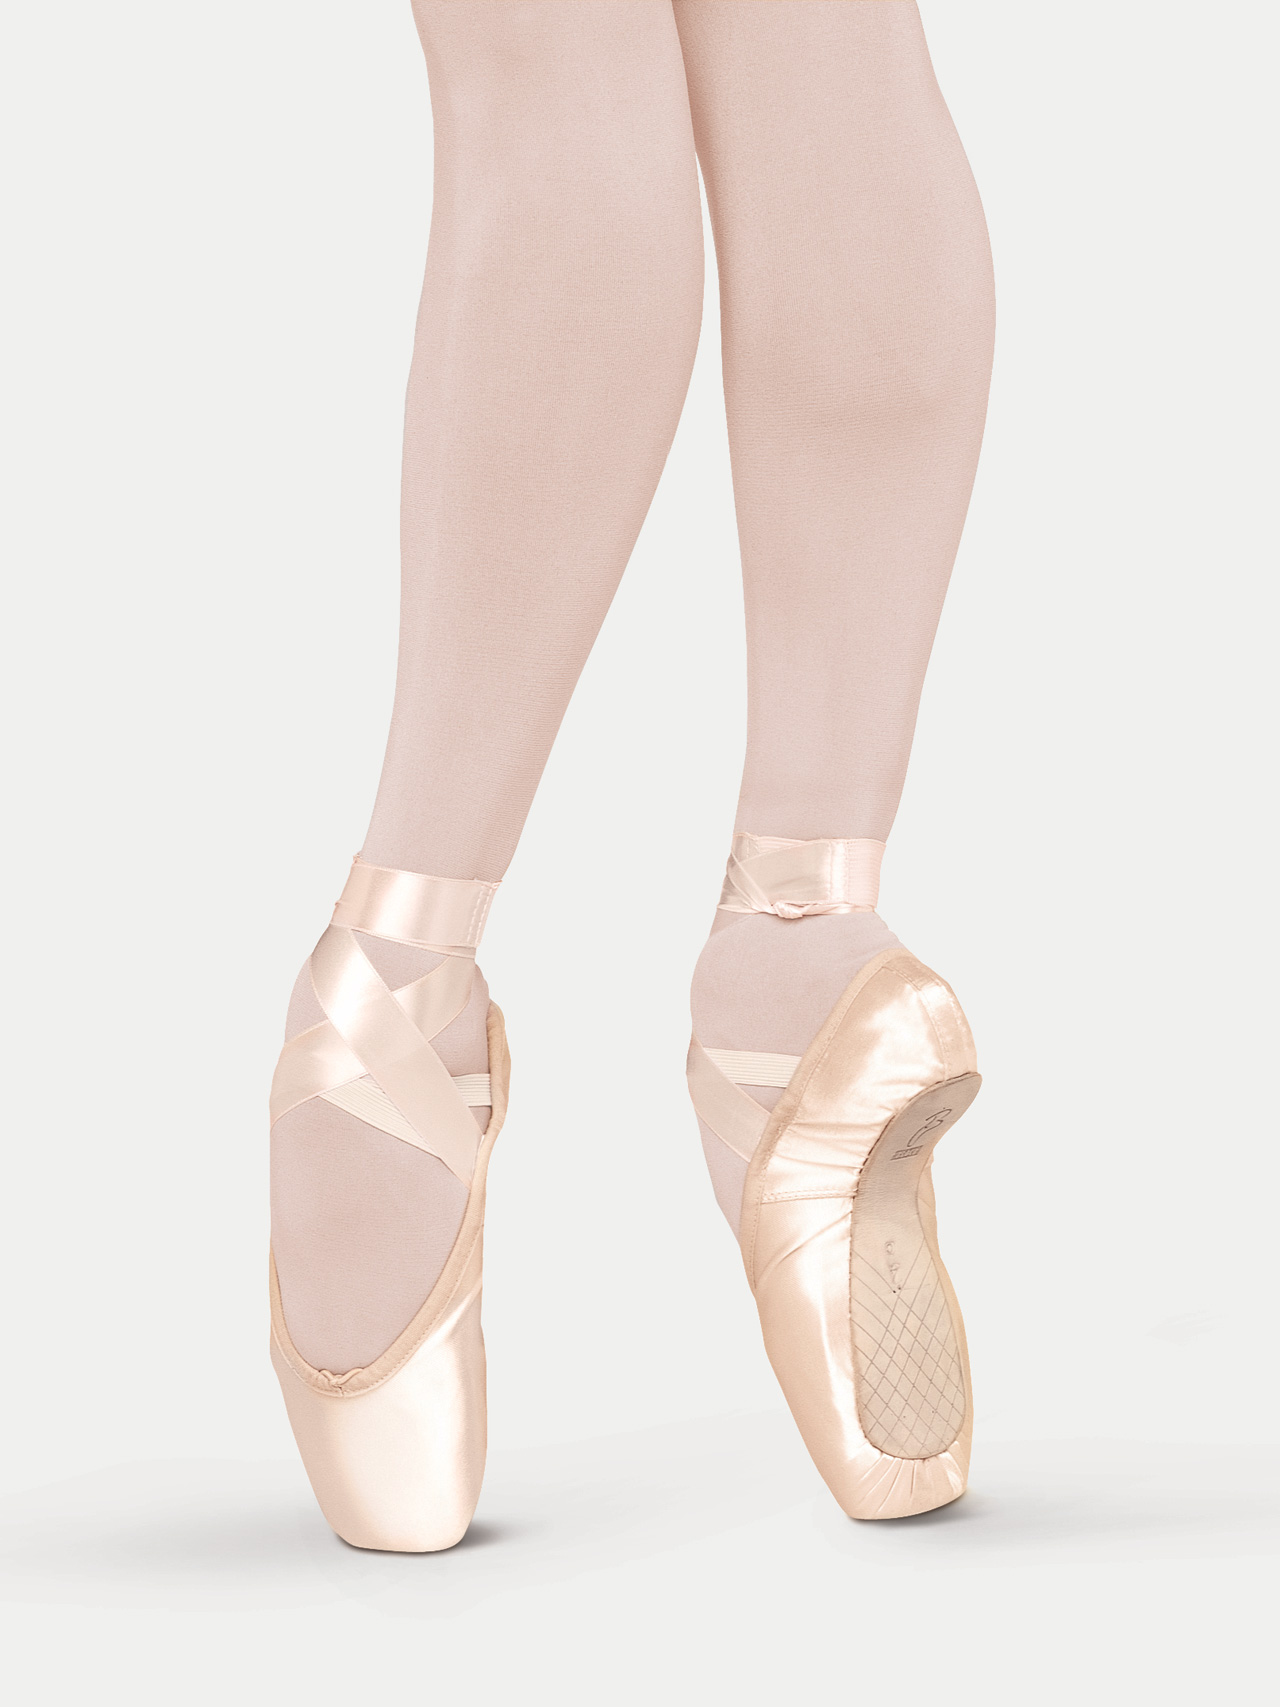 Bloch Jetstream Pointe Shoe Review